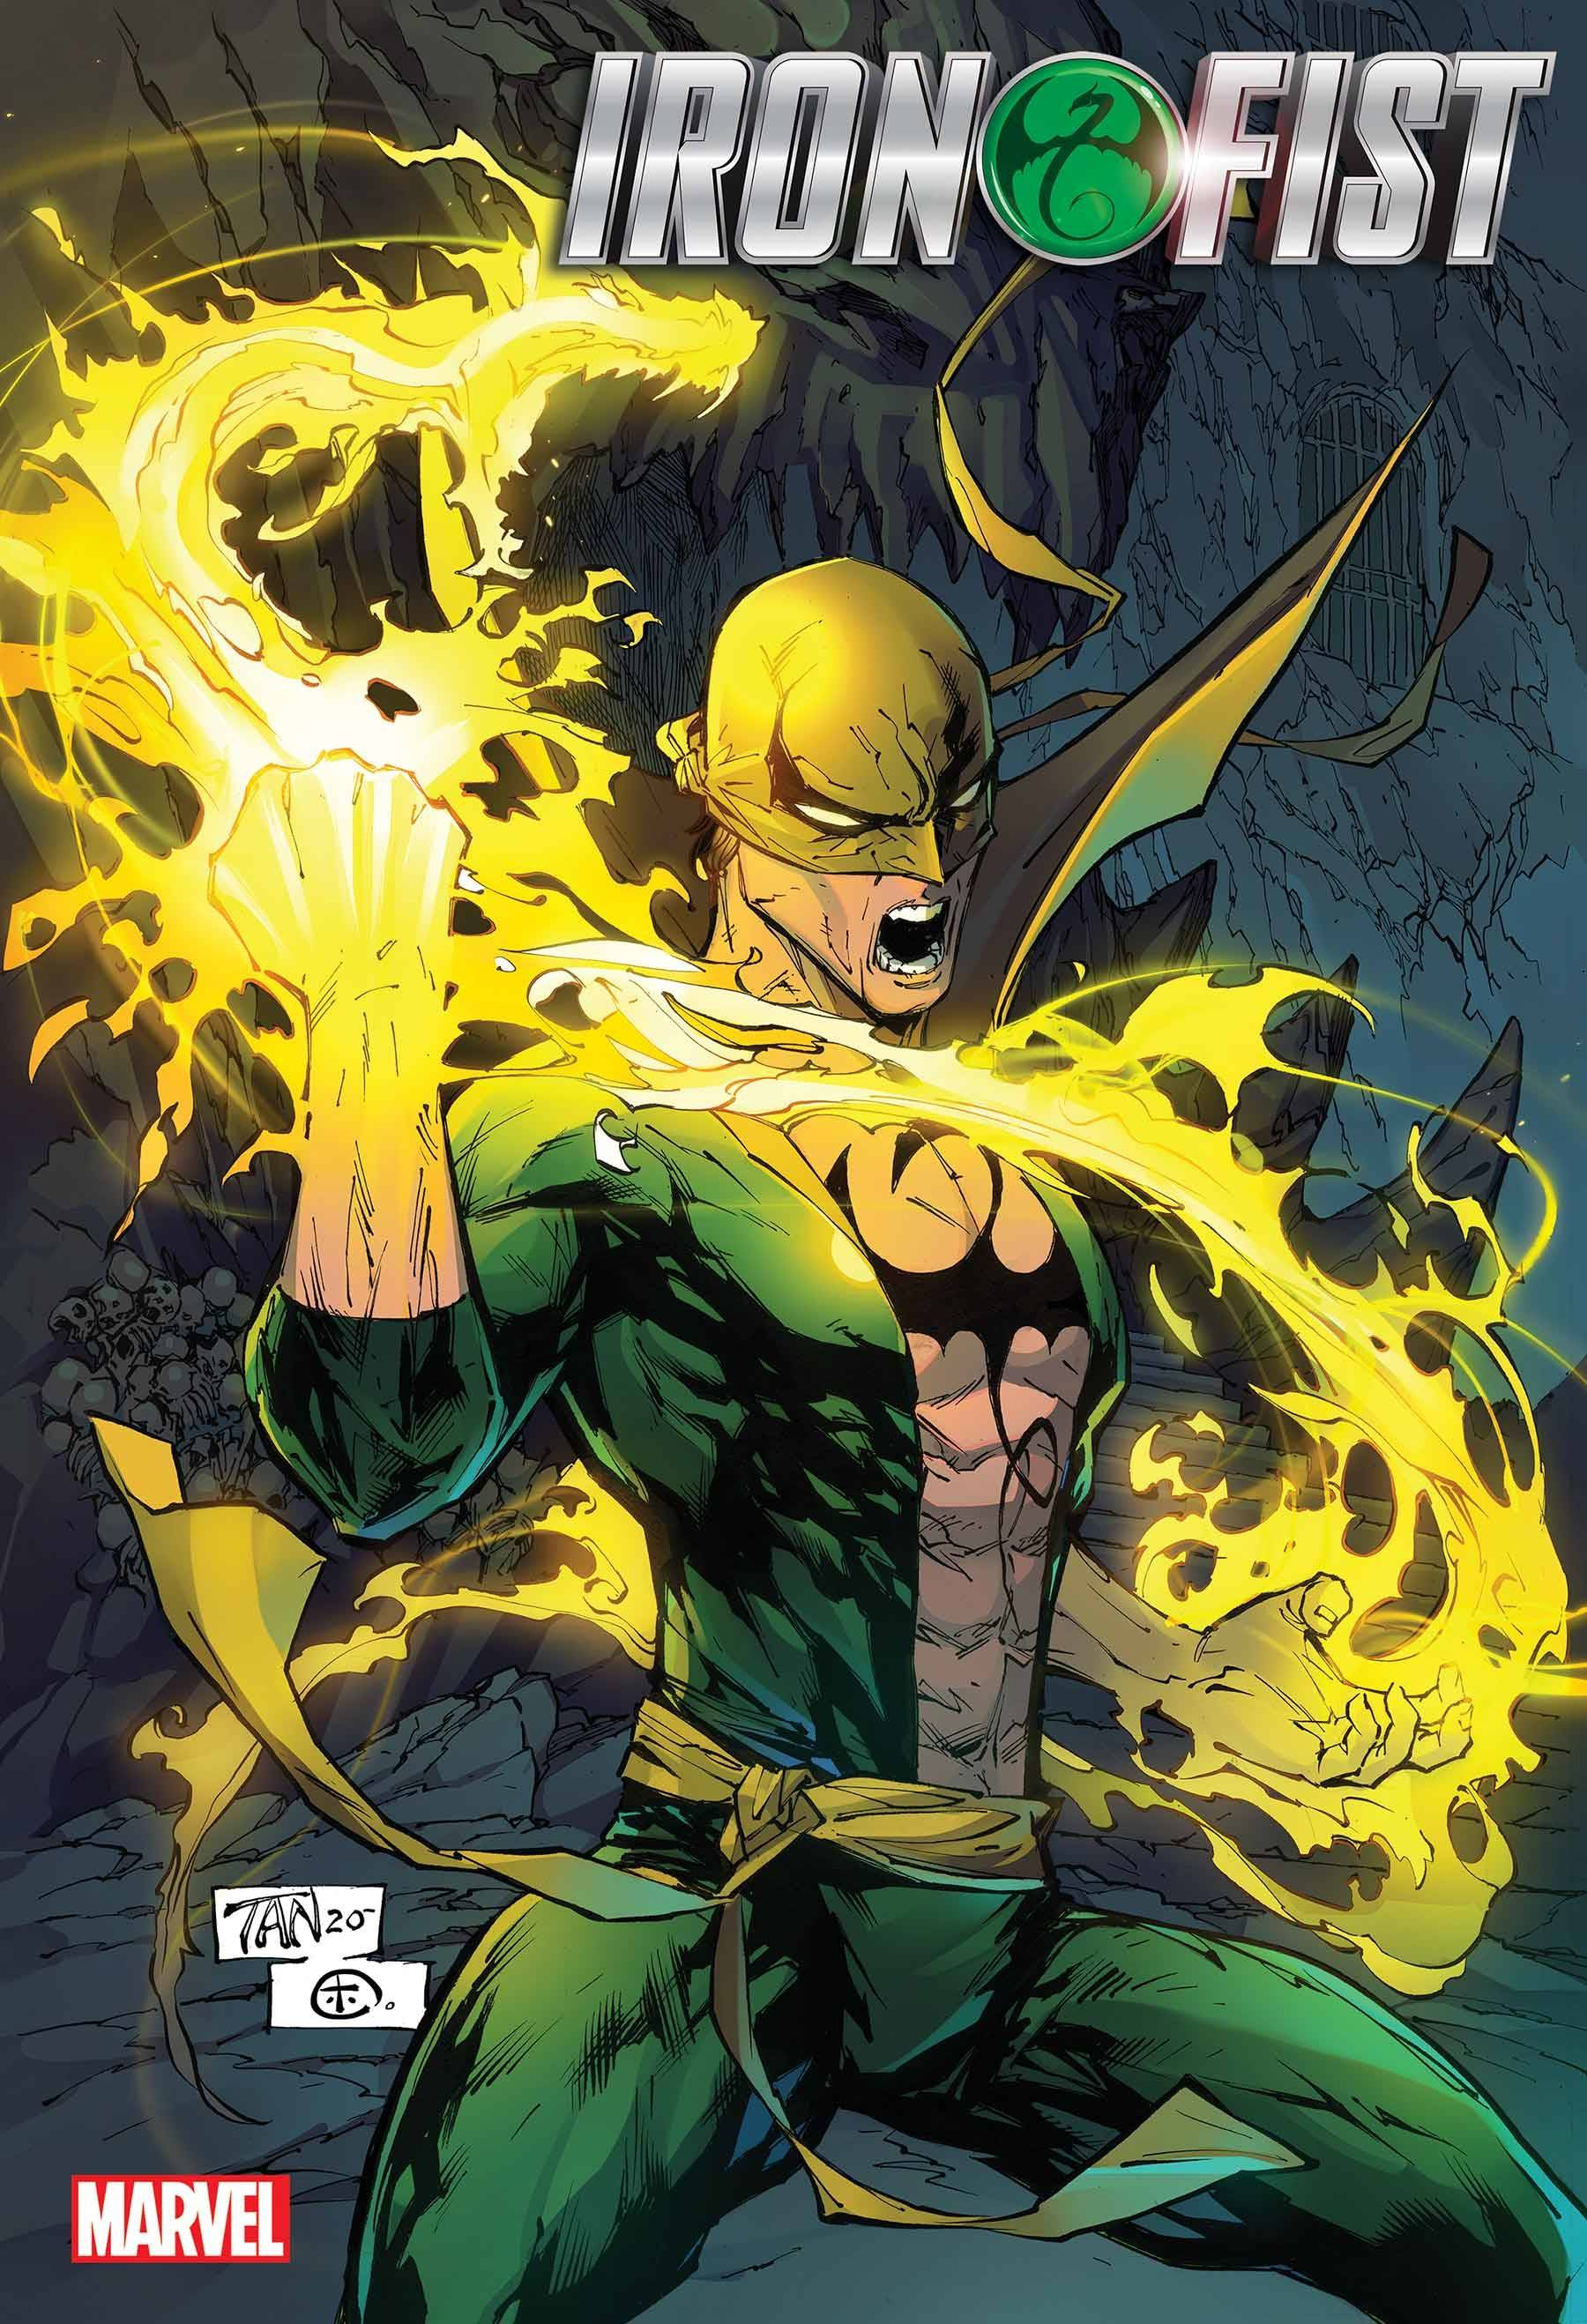 IRON FIST HEART OF DRAGON #1 POSTER